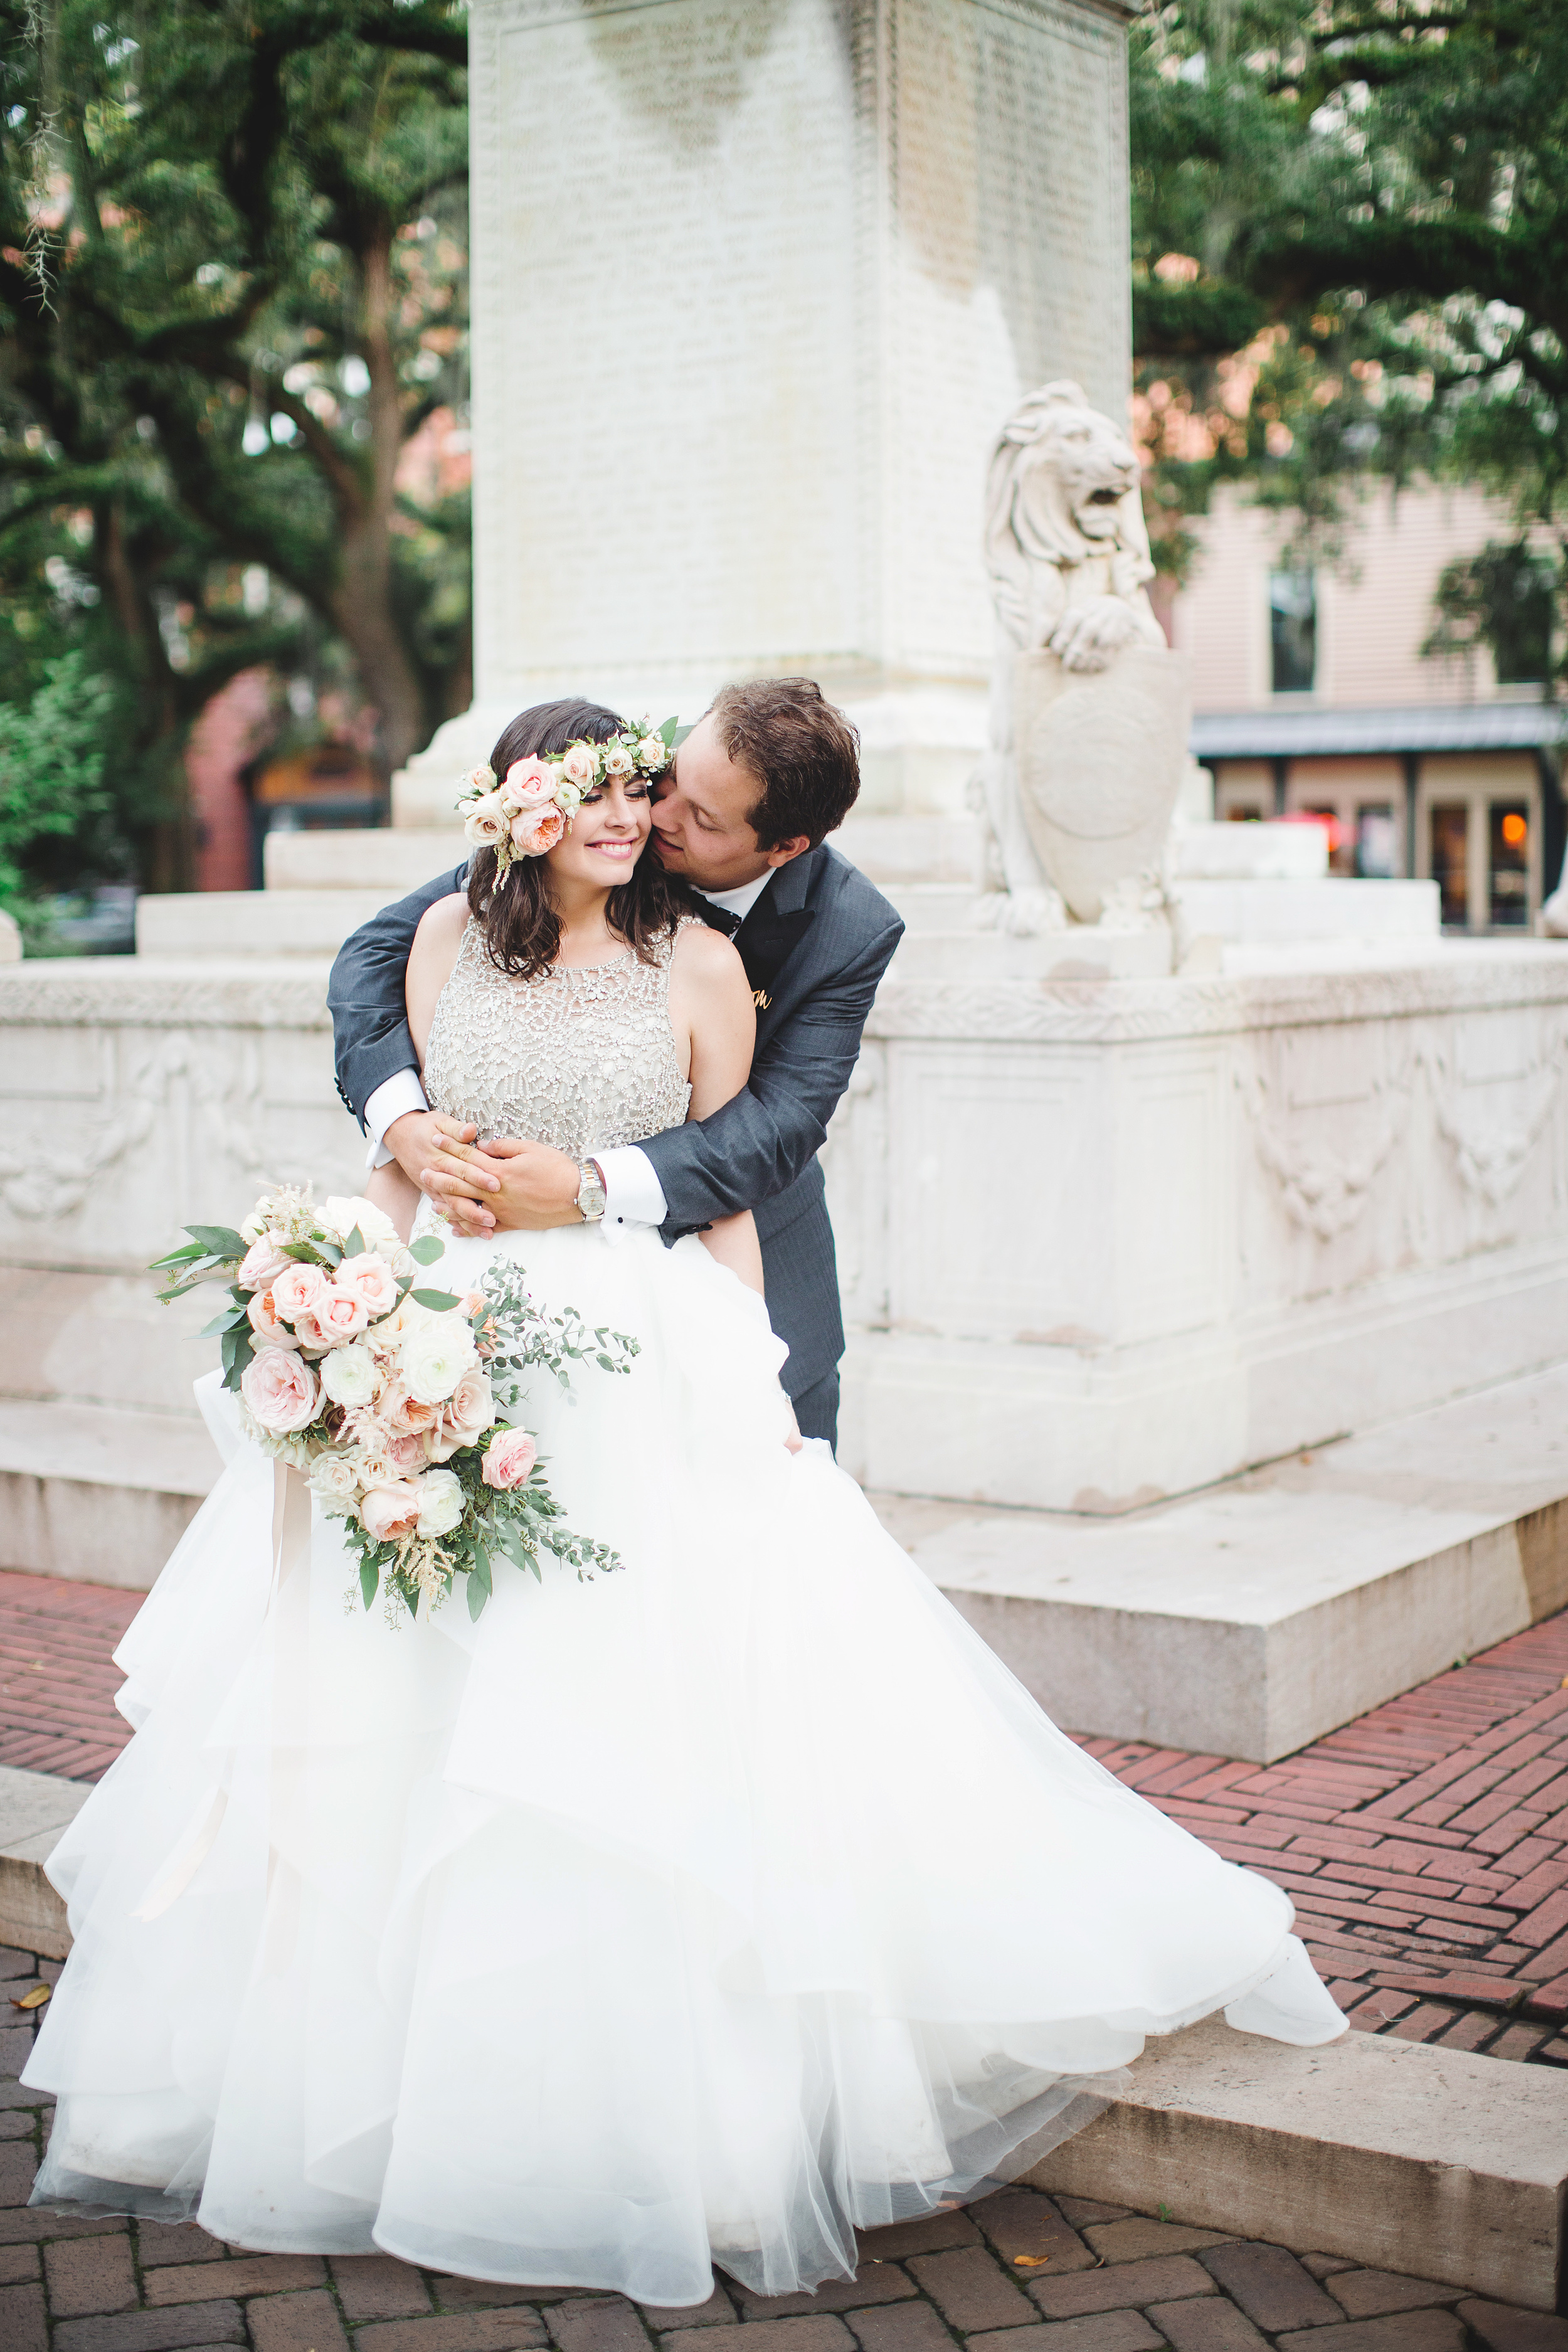 daniela-and-pedro-wedding-izzy-hudgins-photography-a-to-zinnias-whitfield-square-charles-h-morris-center-wedding-ivoyy-and-beau-bridal-boutique-dorie-hayley-paige-savannah-wedding-planner-savannah-bridal-boutique-savannah-weddings-38.jpg